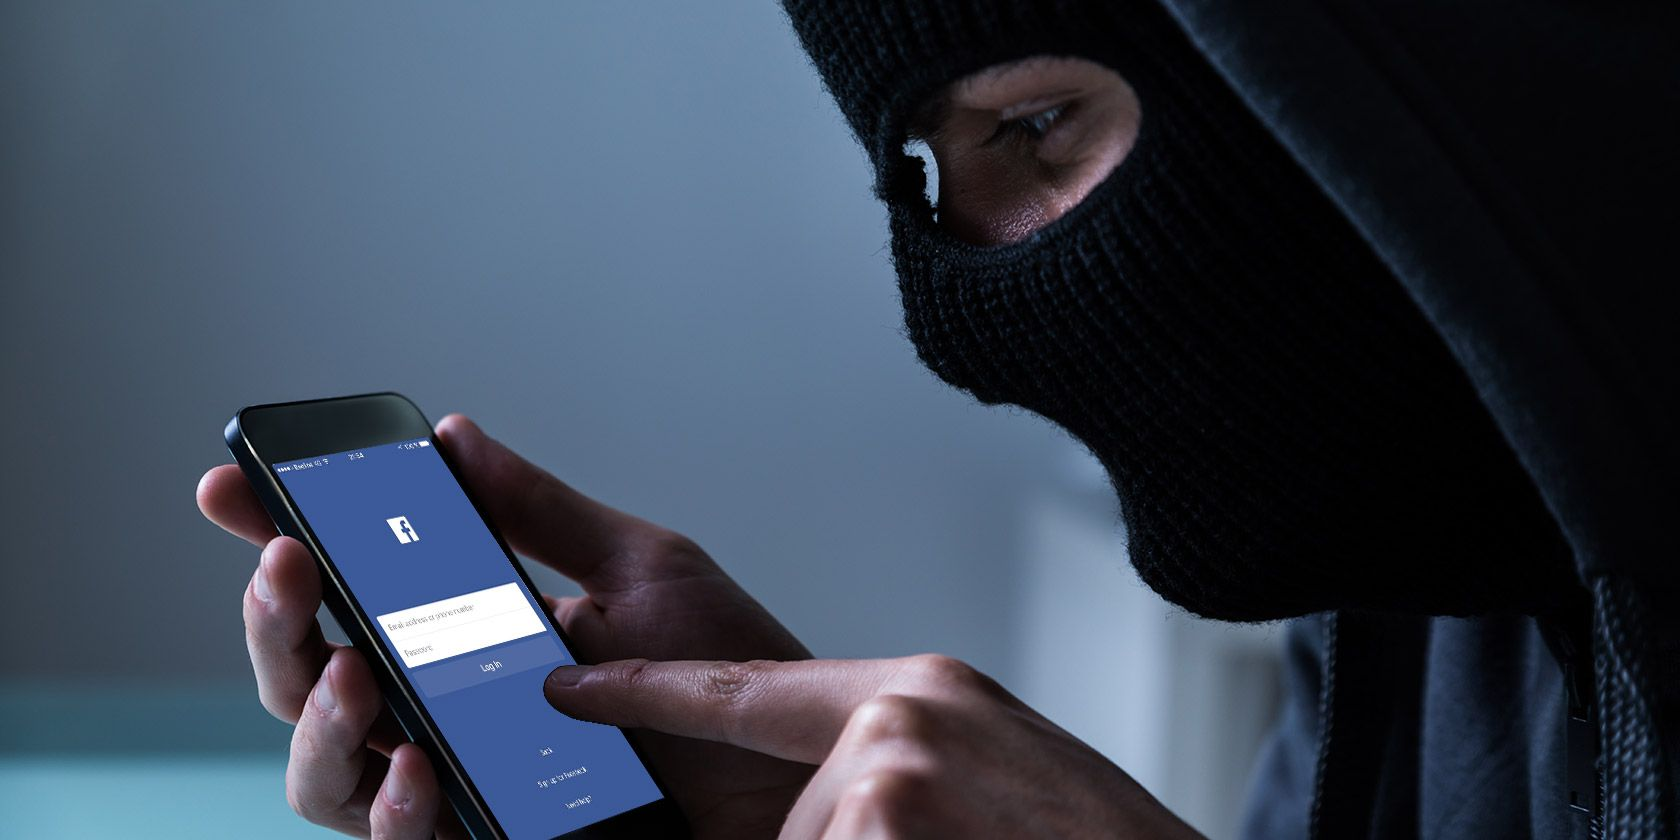 Has Your Facebook Been Hacked How To Tell And Fix It Phone Cyber Security Threats Hacks